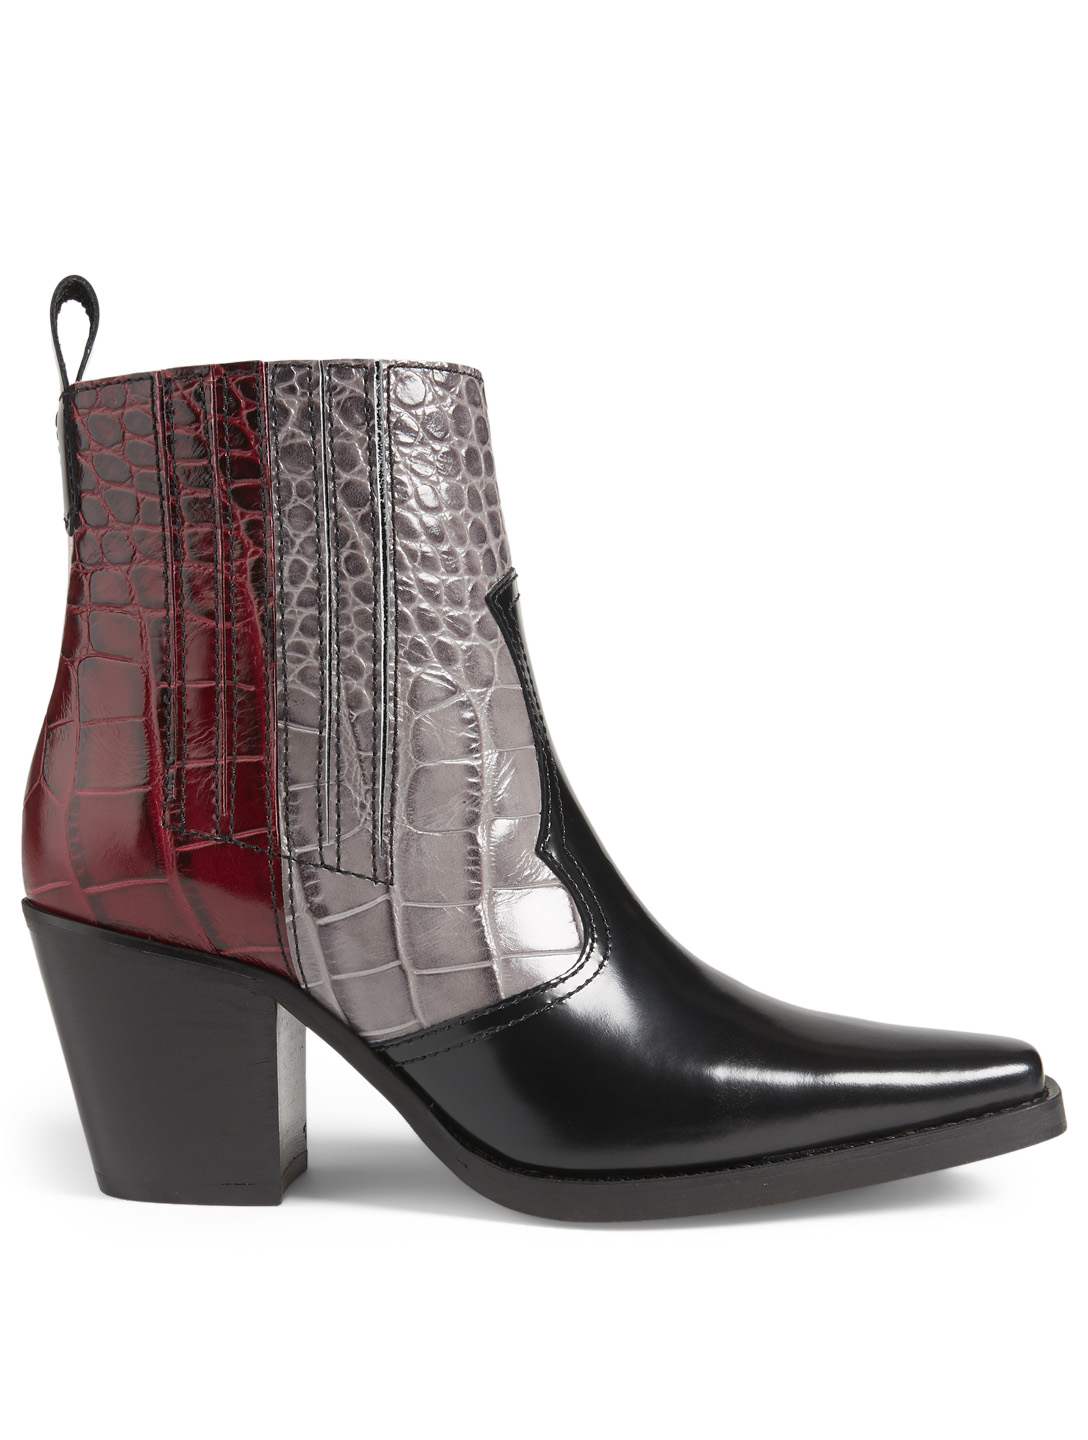 8b2840b7b3b GANNI Western Croc-Embossed Leather Ankle Boots Women's Black ...